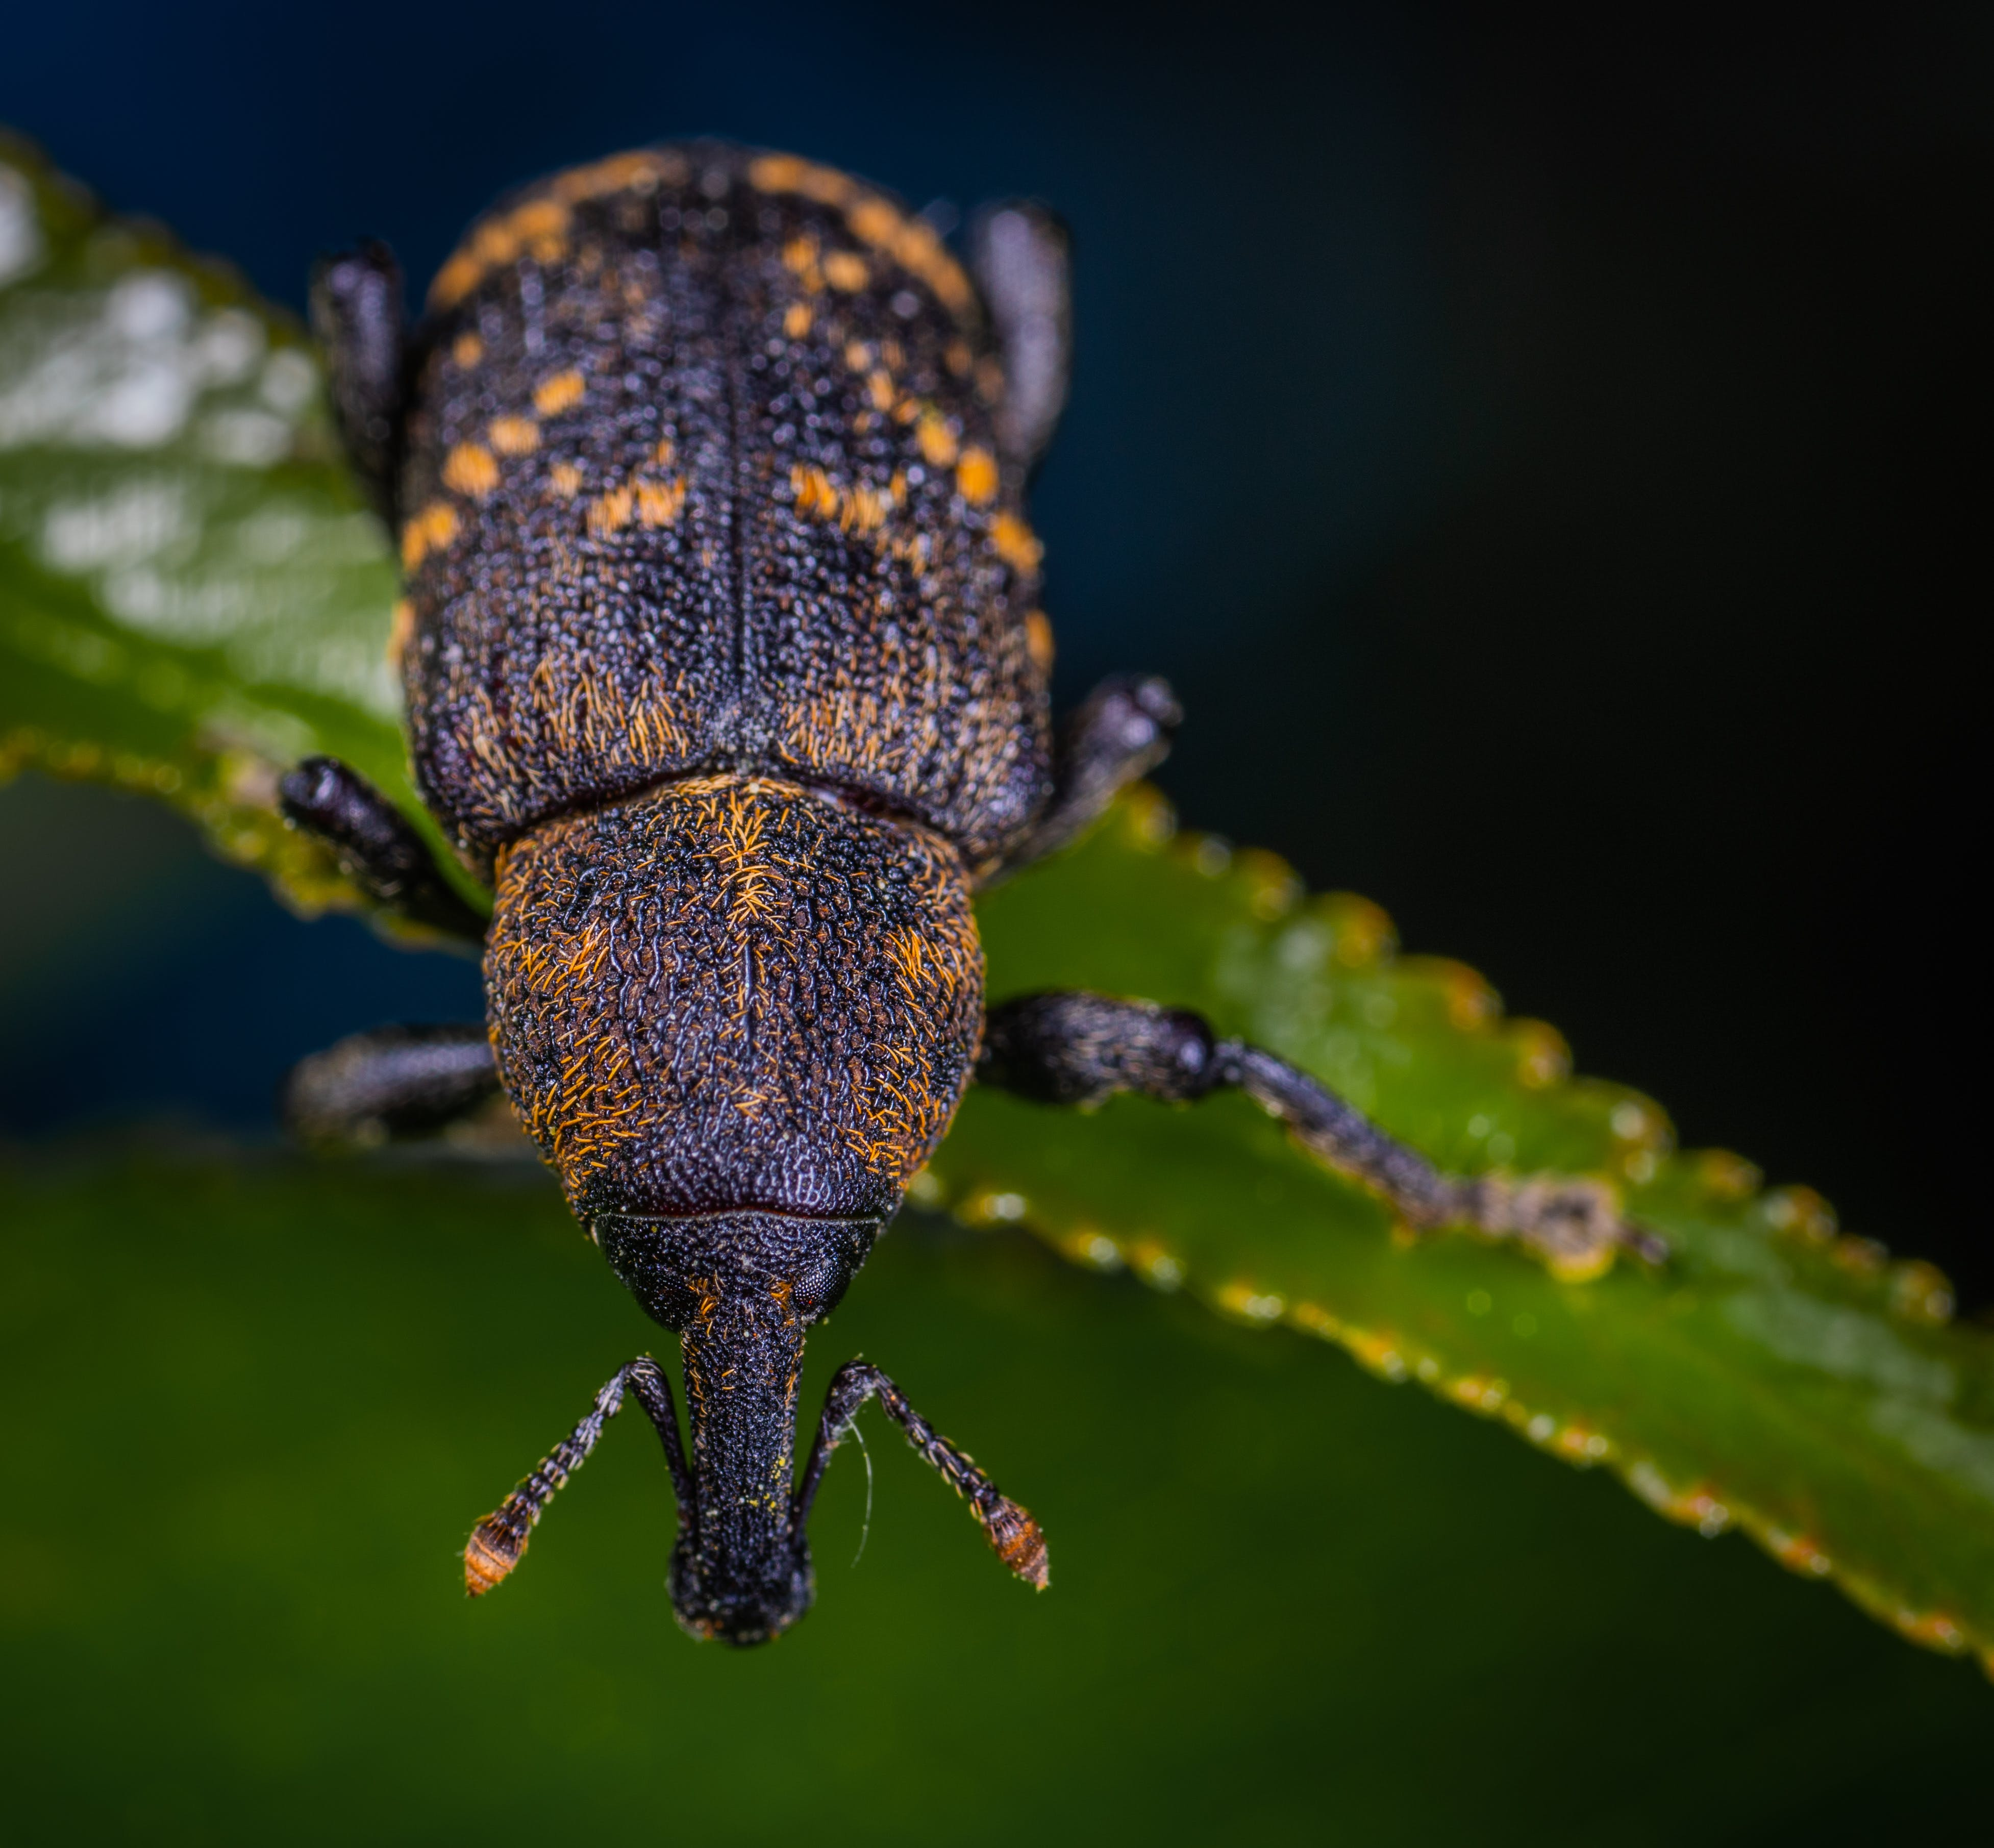 Close-up Photography Of Insect On Leaf